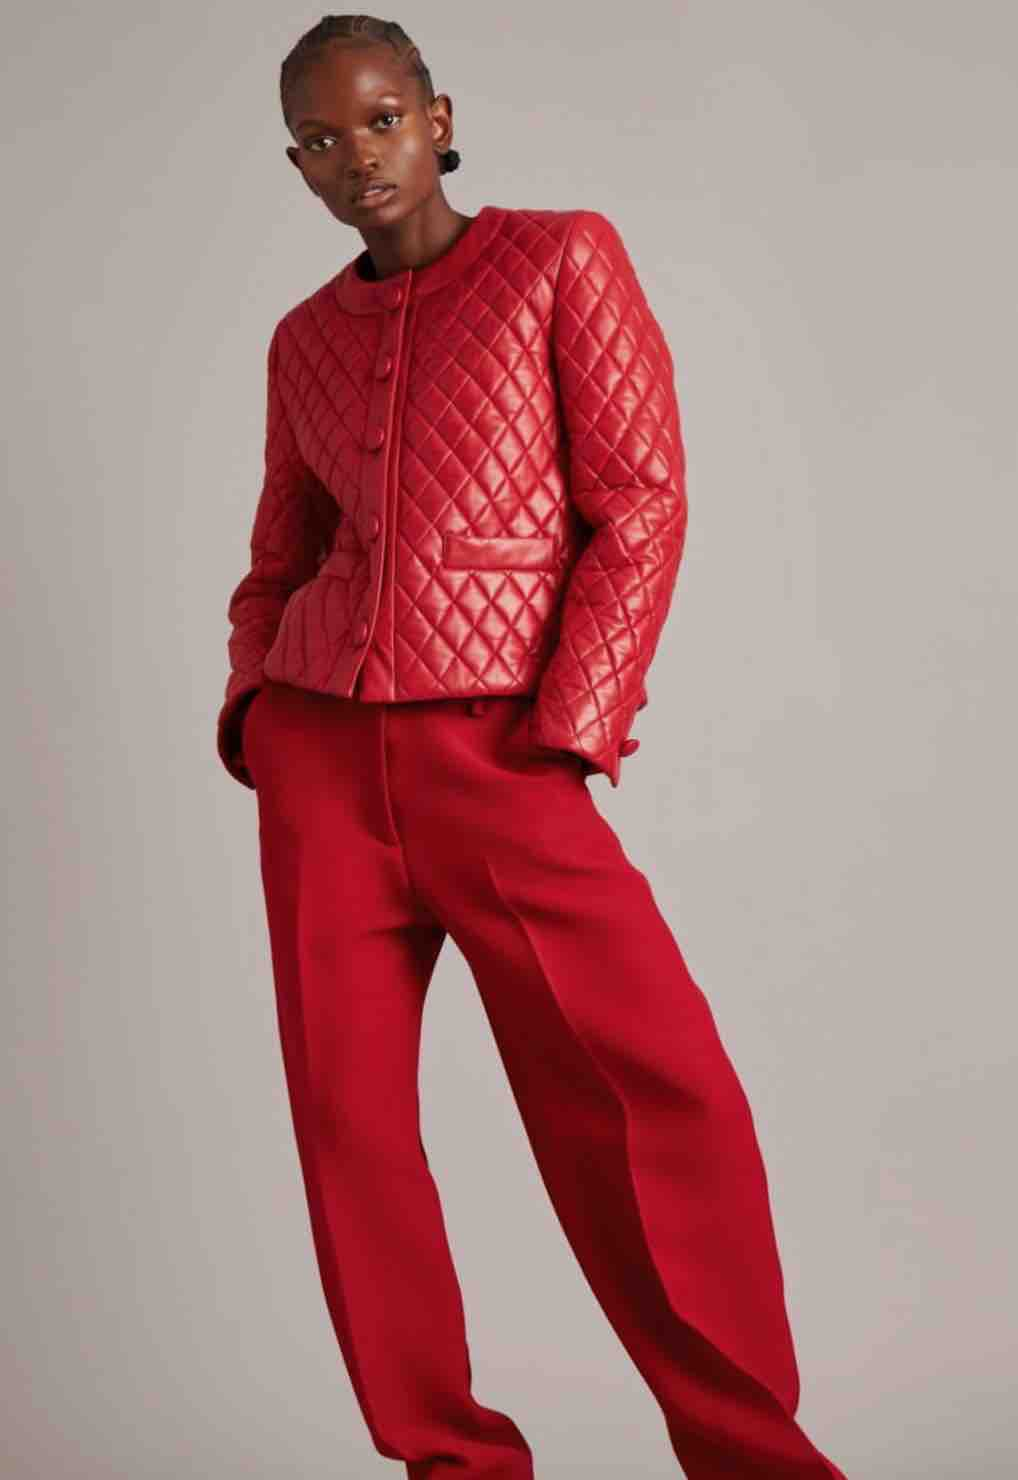 Quilted Adam Lippes Jacket Is One Of The Style Trends To Shop For Fall 2021